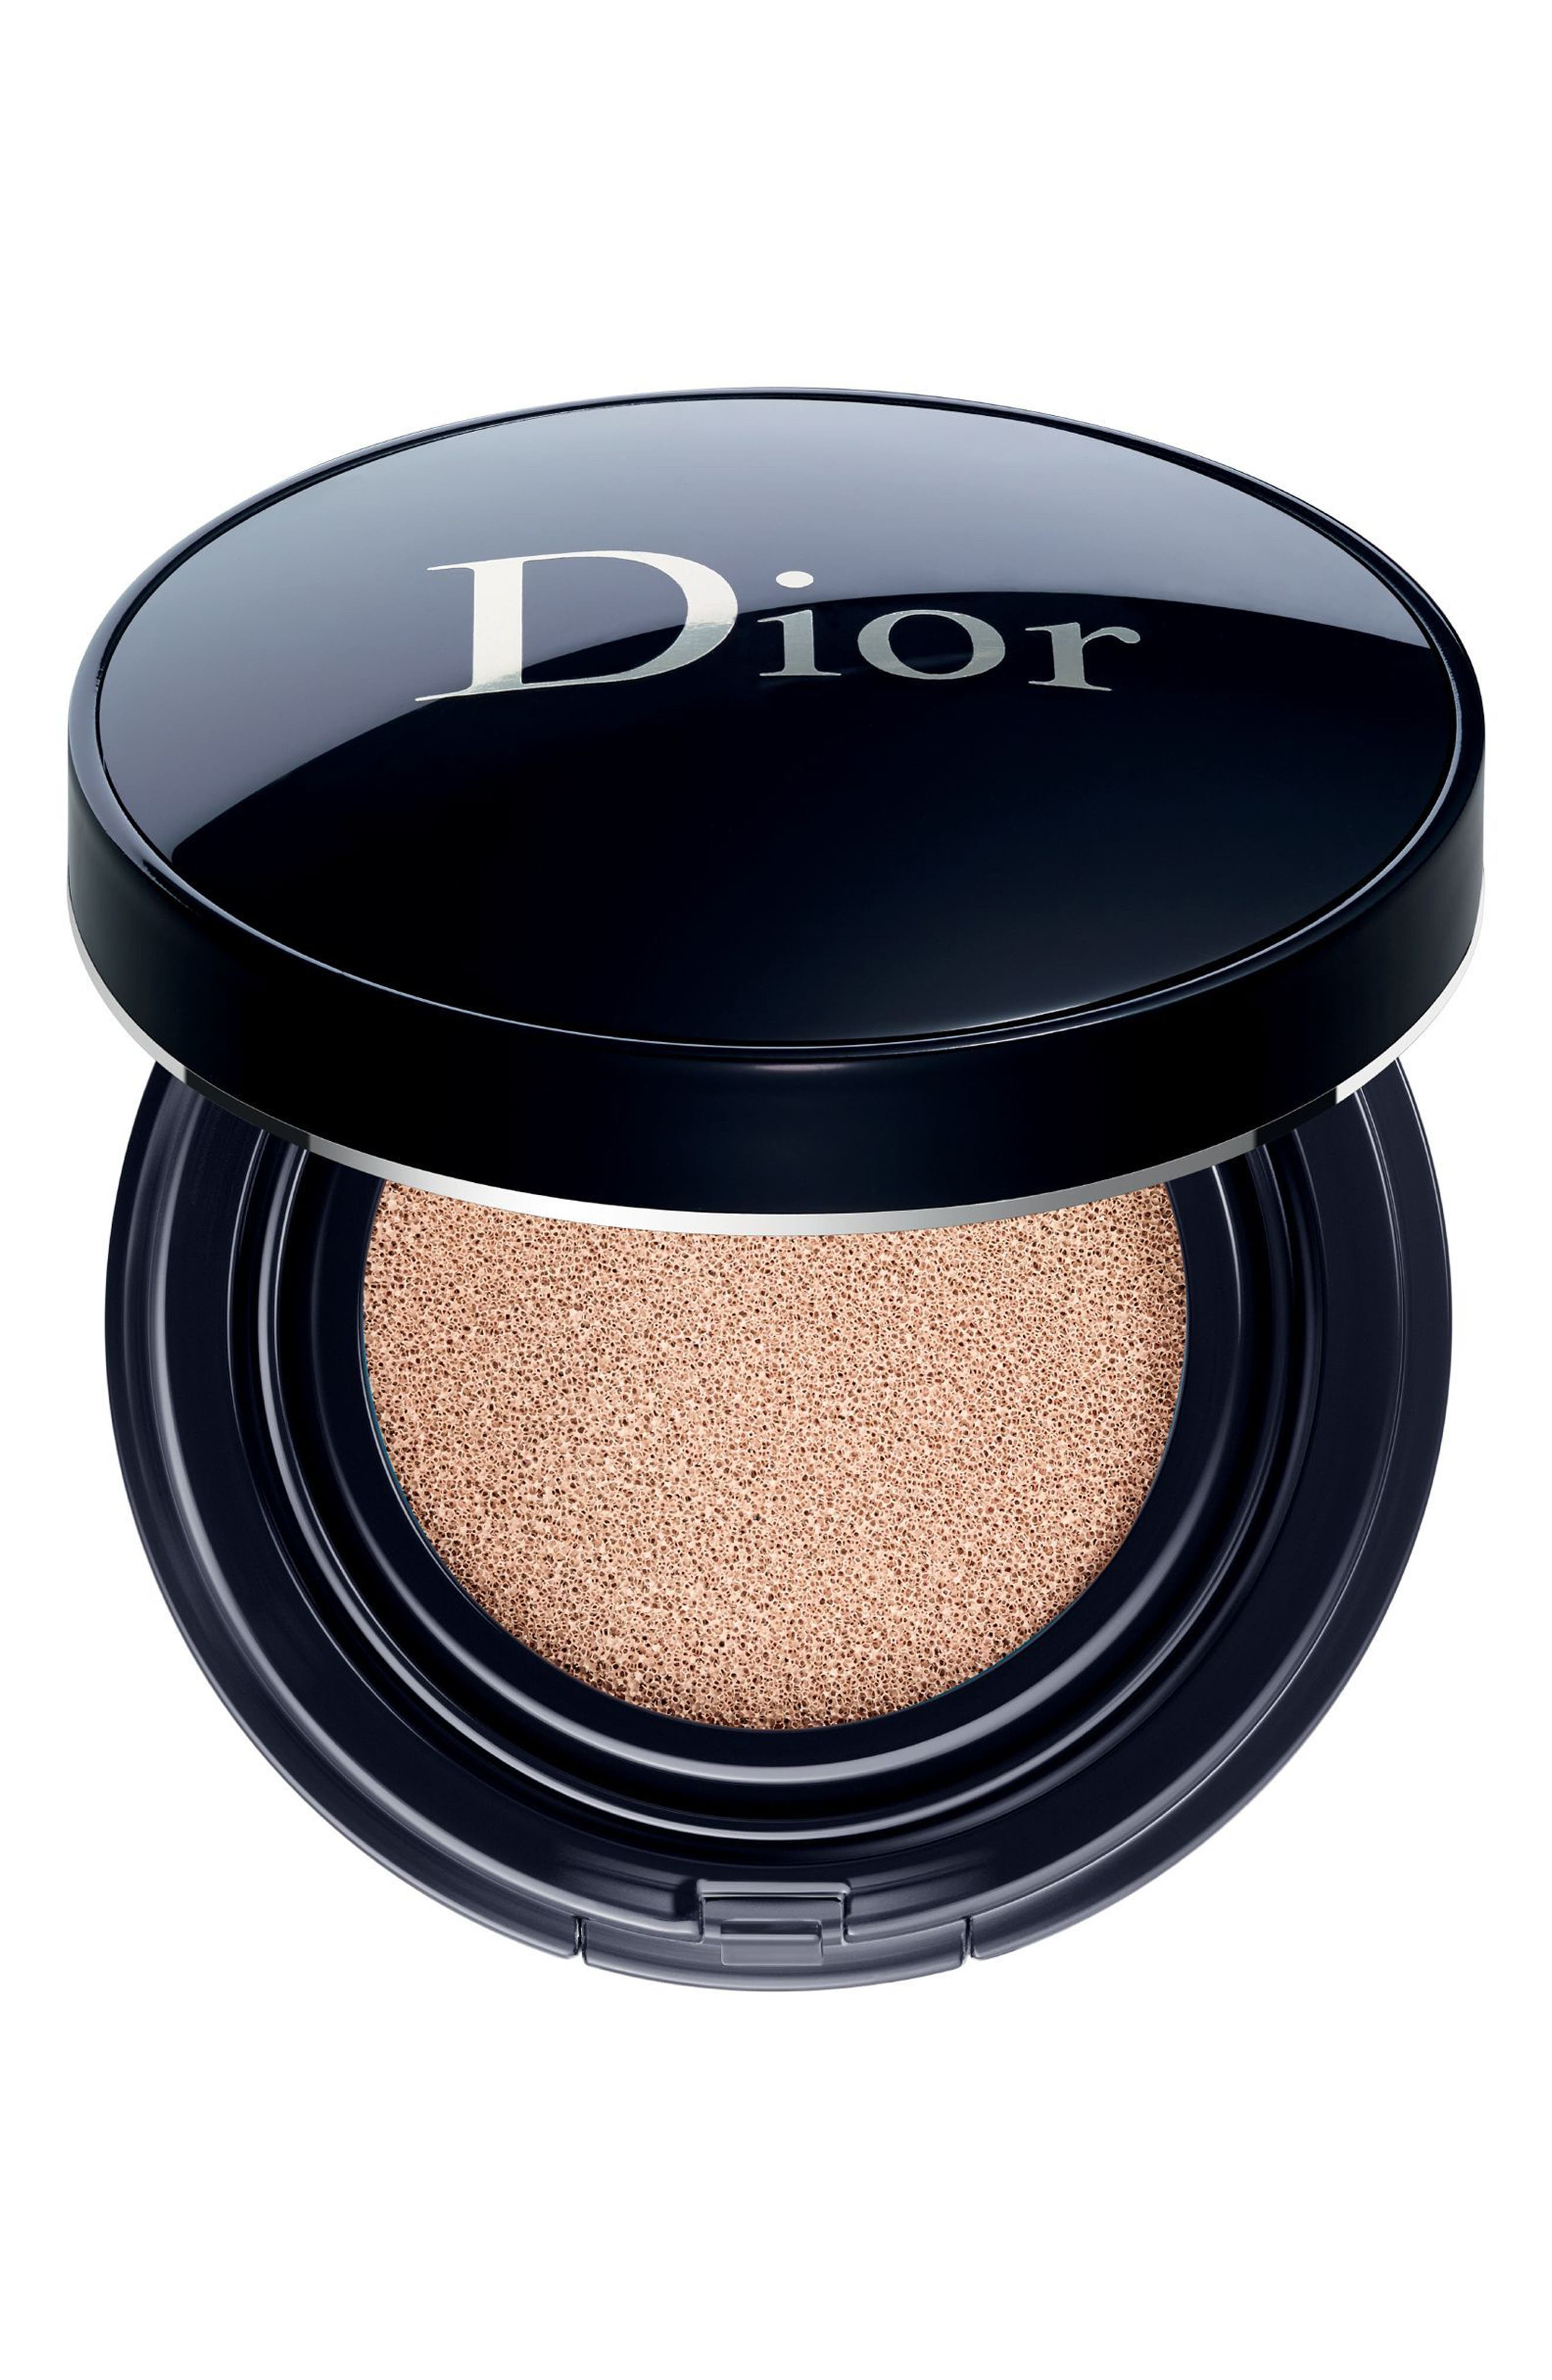 Main Image - Dior Diorskin Forever Perfect Cushion Foundation Broad Spectrum SPF 35